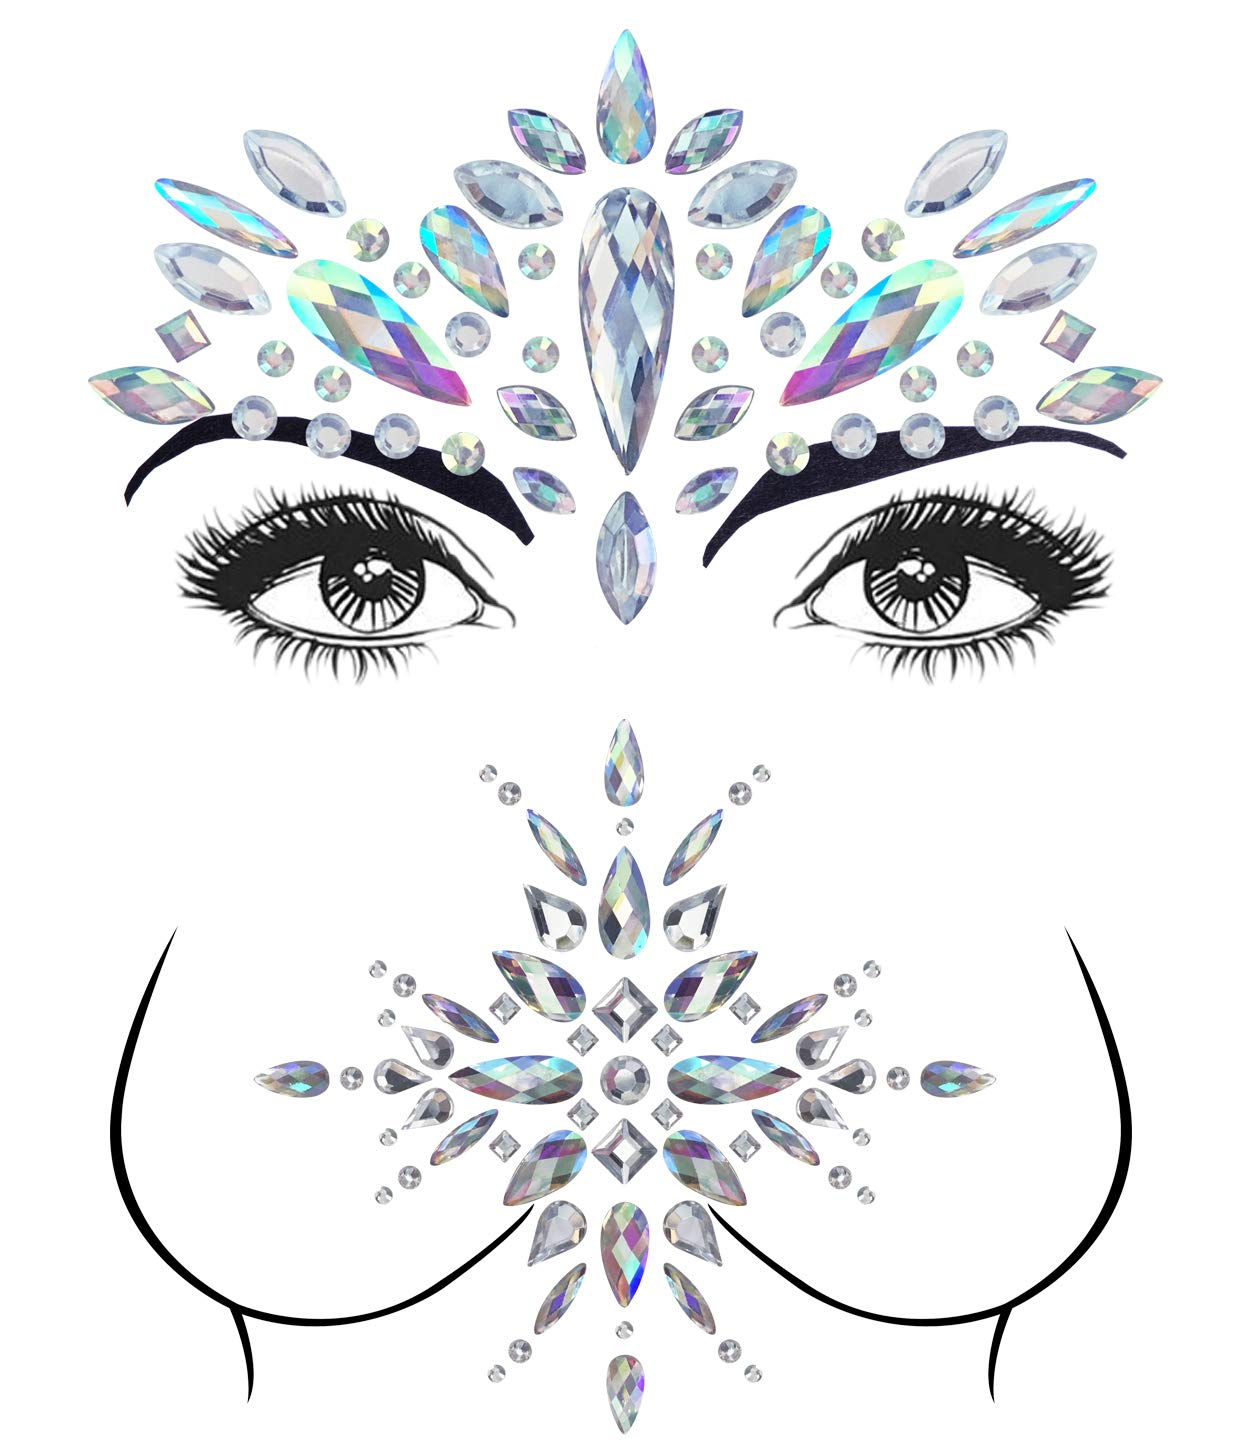 2 Sets Mermaid Face Gems Rhinestone Tattoo Festival Jewels Face Chest Forehead Body Temporary Tattoos Glitter Crystal Tattoos Bindi Breast Chest Body Rhinestone Stickers by YHmall